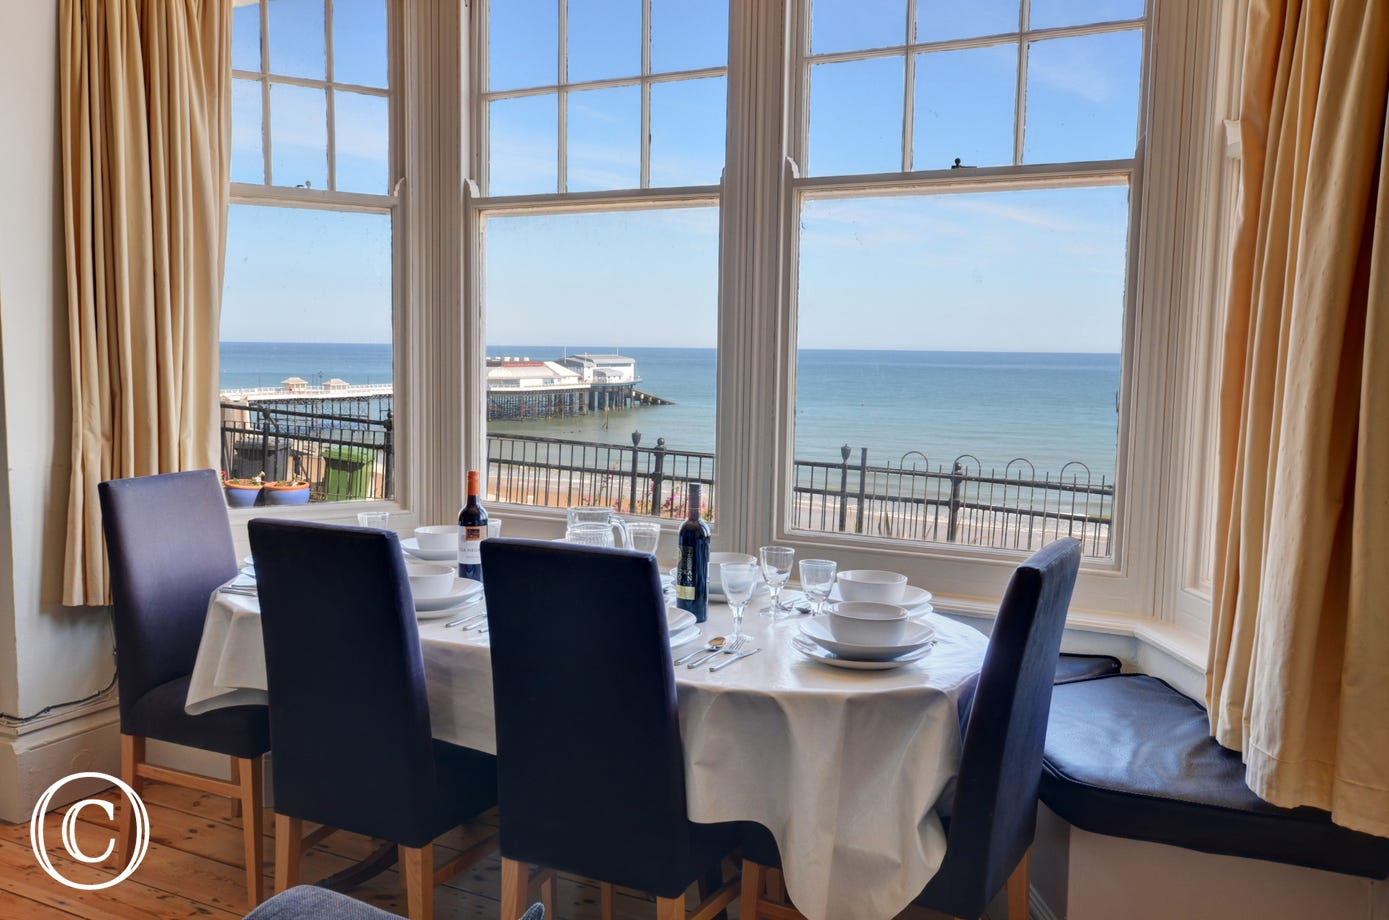 The dining area by the window has stunning views to the sea.